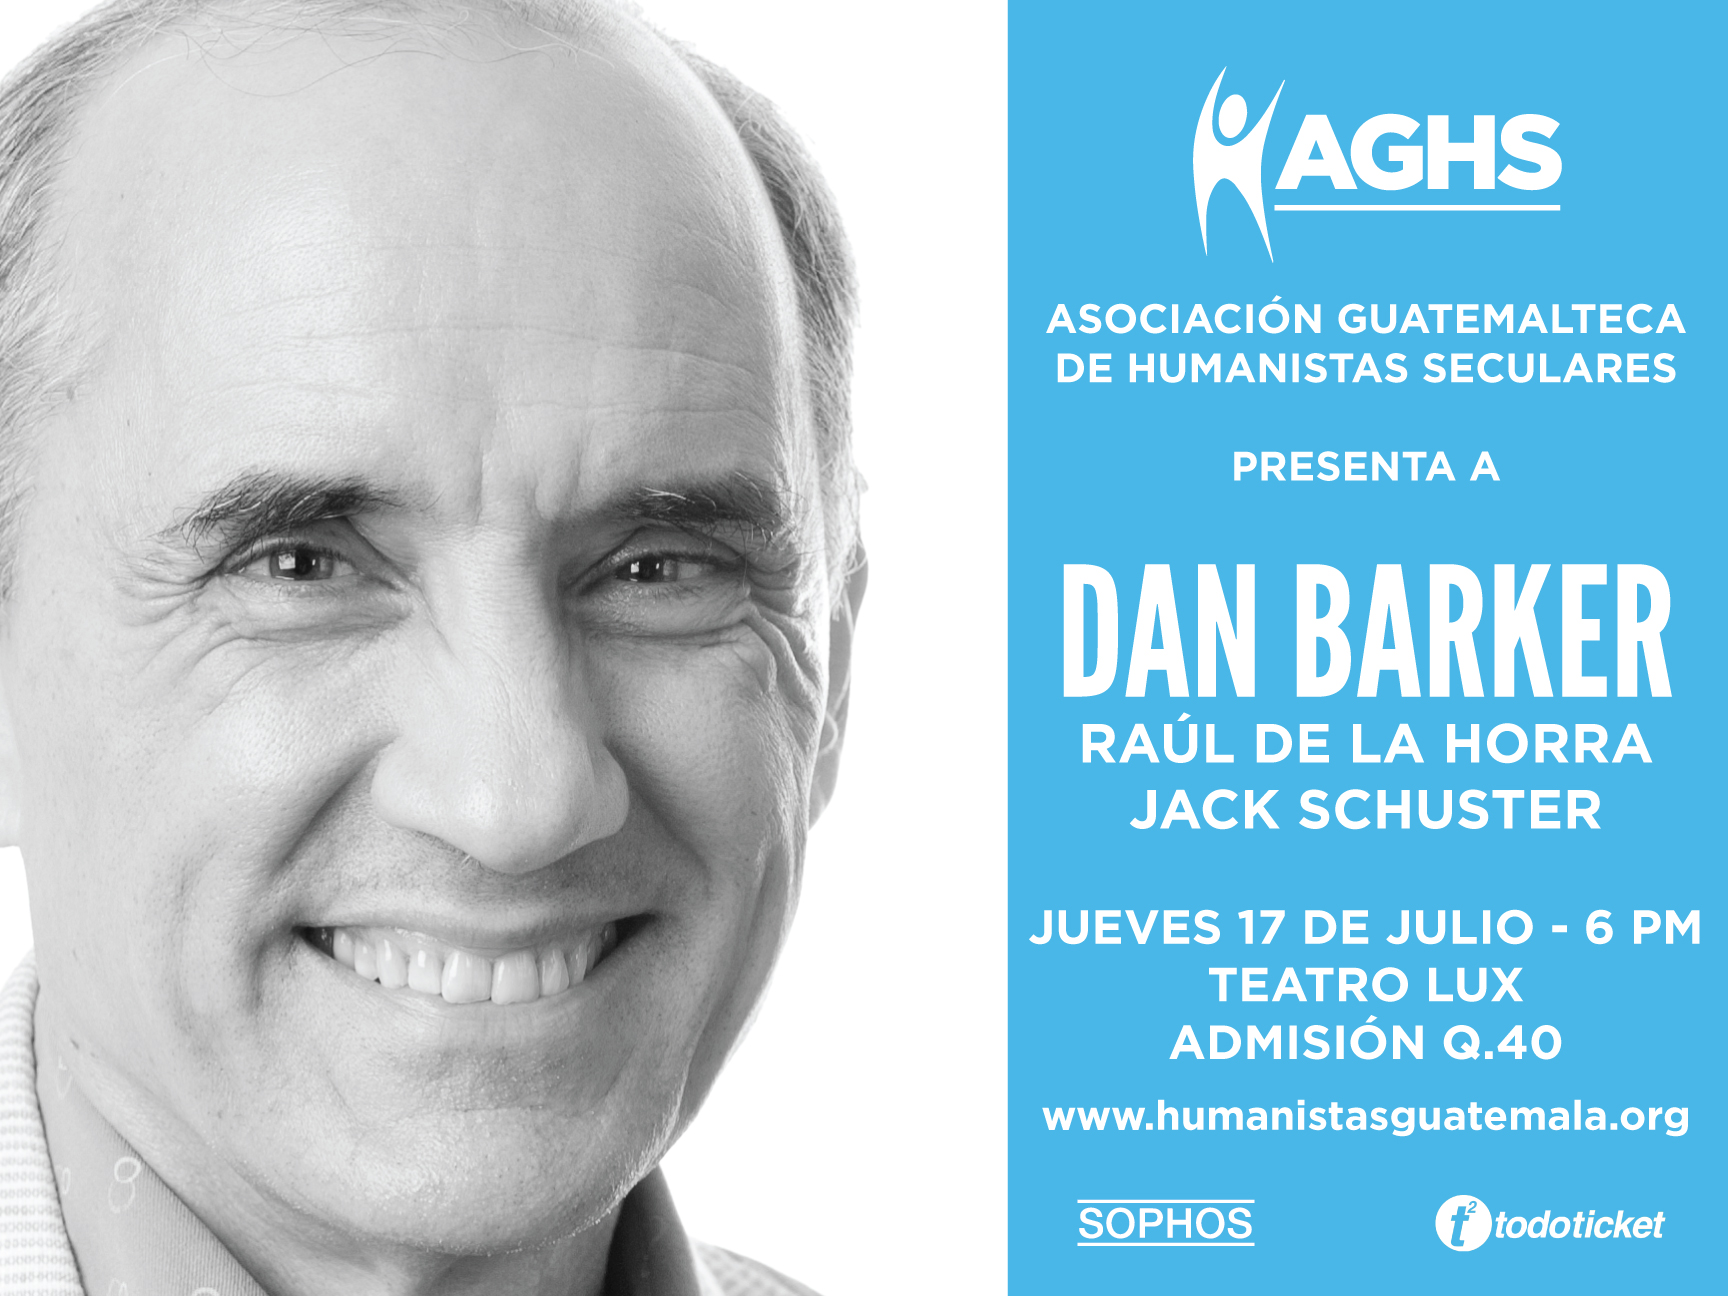 Guatemala Humanists launch event Dan Barker poster